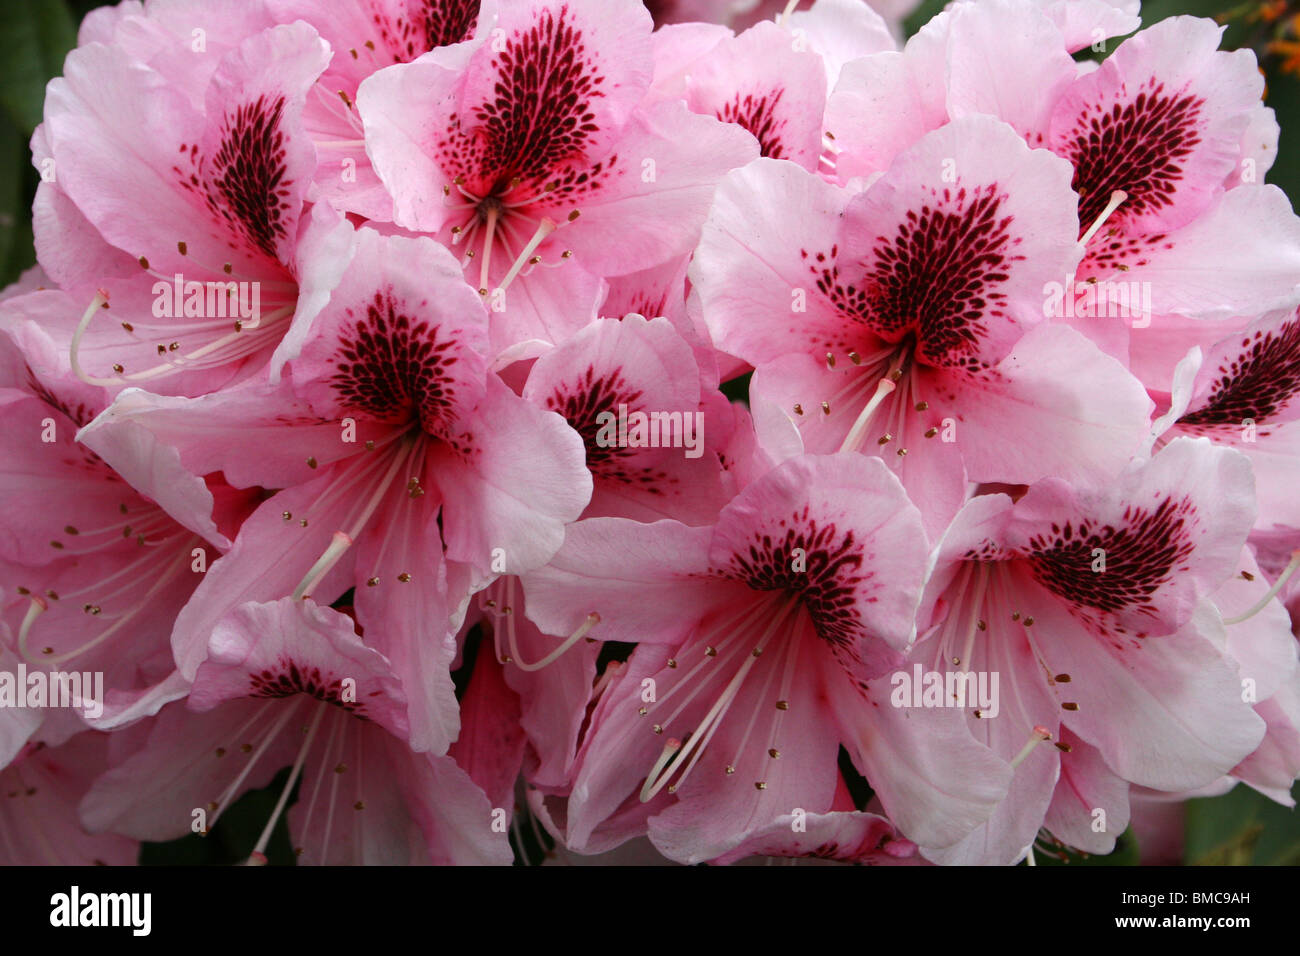 Pink Rhododendron With Flaring Red Centre Taken In Liverpool, Merseyside, UK - Stock Image